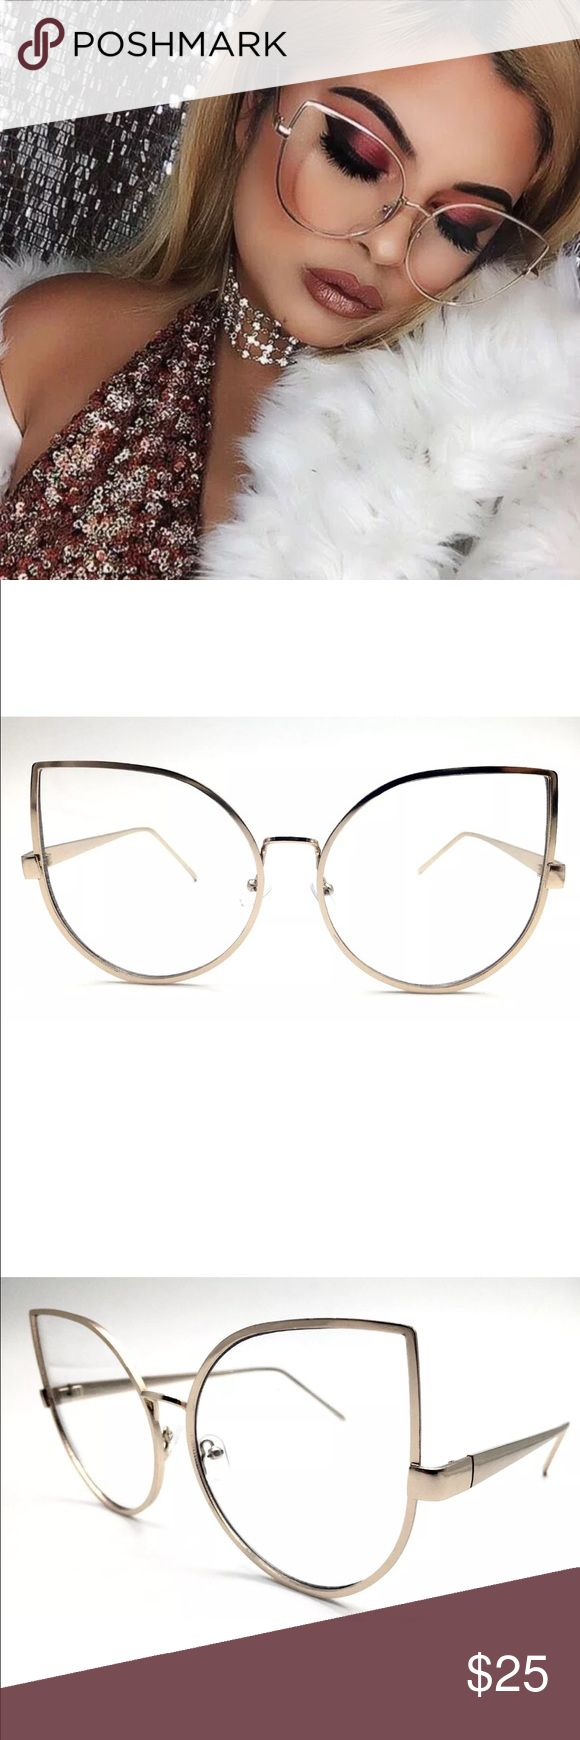 New✨ Oversized Cat Eye Clear GOLD Glasses ✨ NO- Offers‼️ PRICE IS FIRM❗️  New Fashion Trend- super cute Oversized Black Frame Clear Glasses ✨  ✨Fashion Accessory  Brand New✨ PRICE IS FIRM- already listed at lowest price  If you want to save please look into bundling  In Stock No Trades Will ship same day as long as order is received by 1:00pm PST  Serious Inquiries Only❣️  Bundle one or more items from my boutique to only pay one shipping fee and SAVE Money❣️ Accessories Glasses